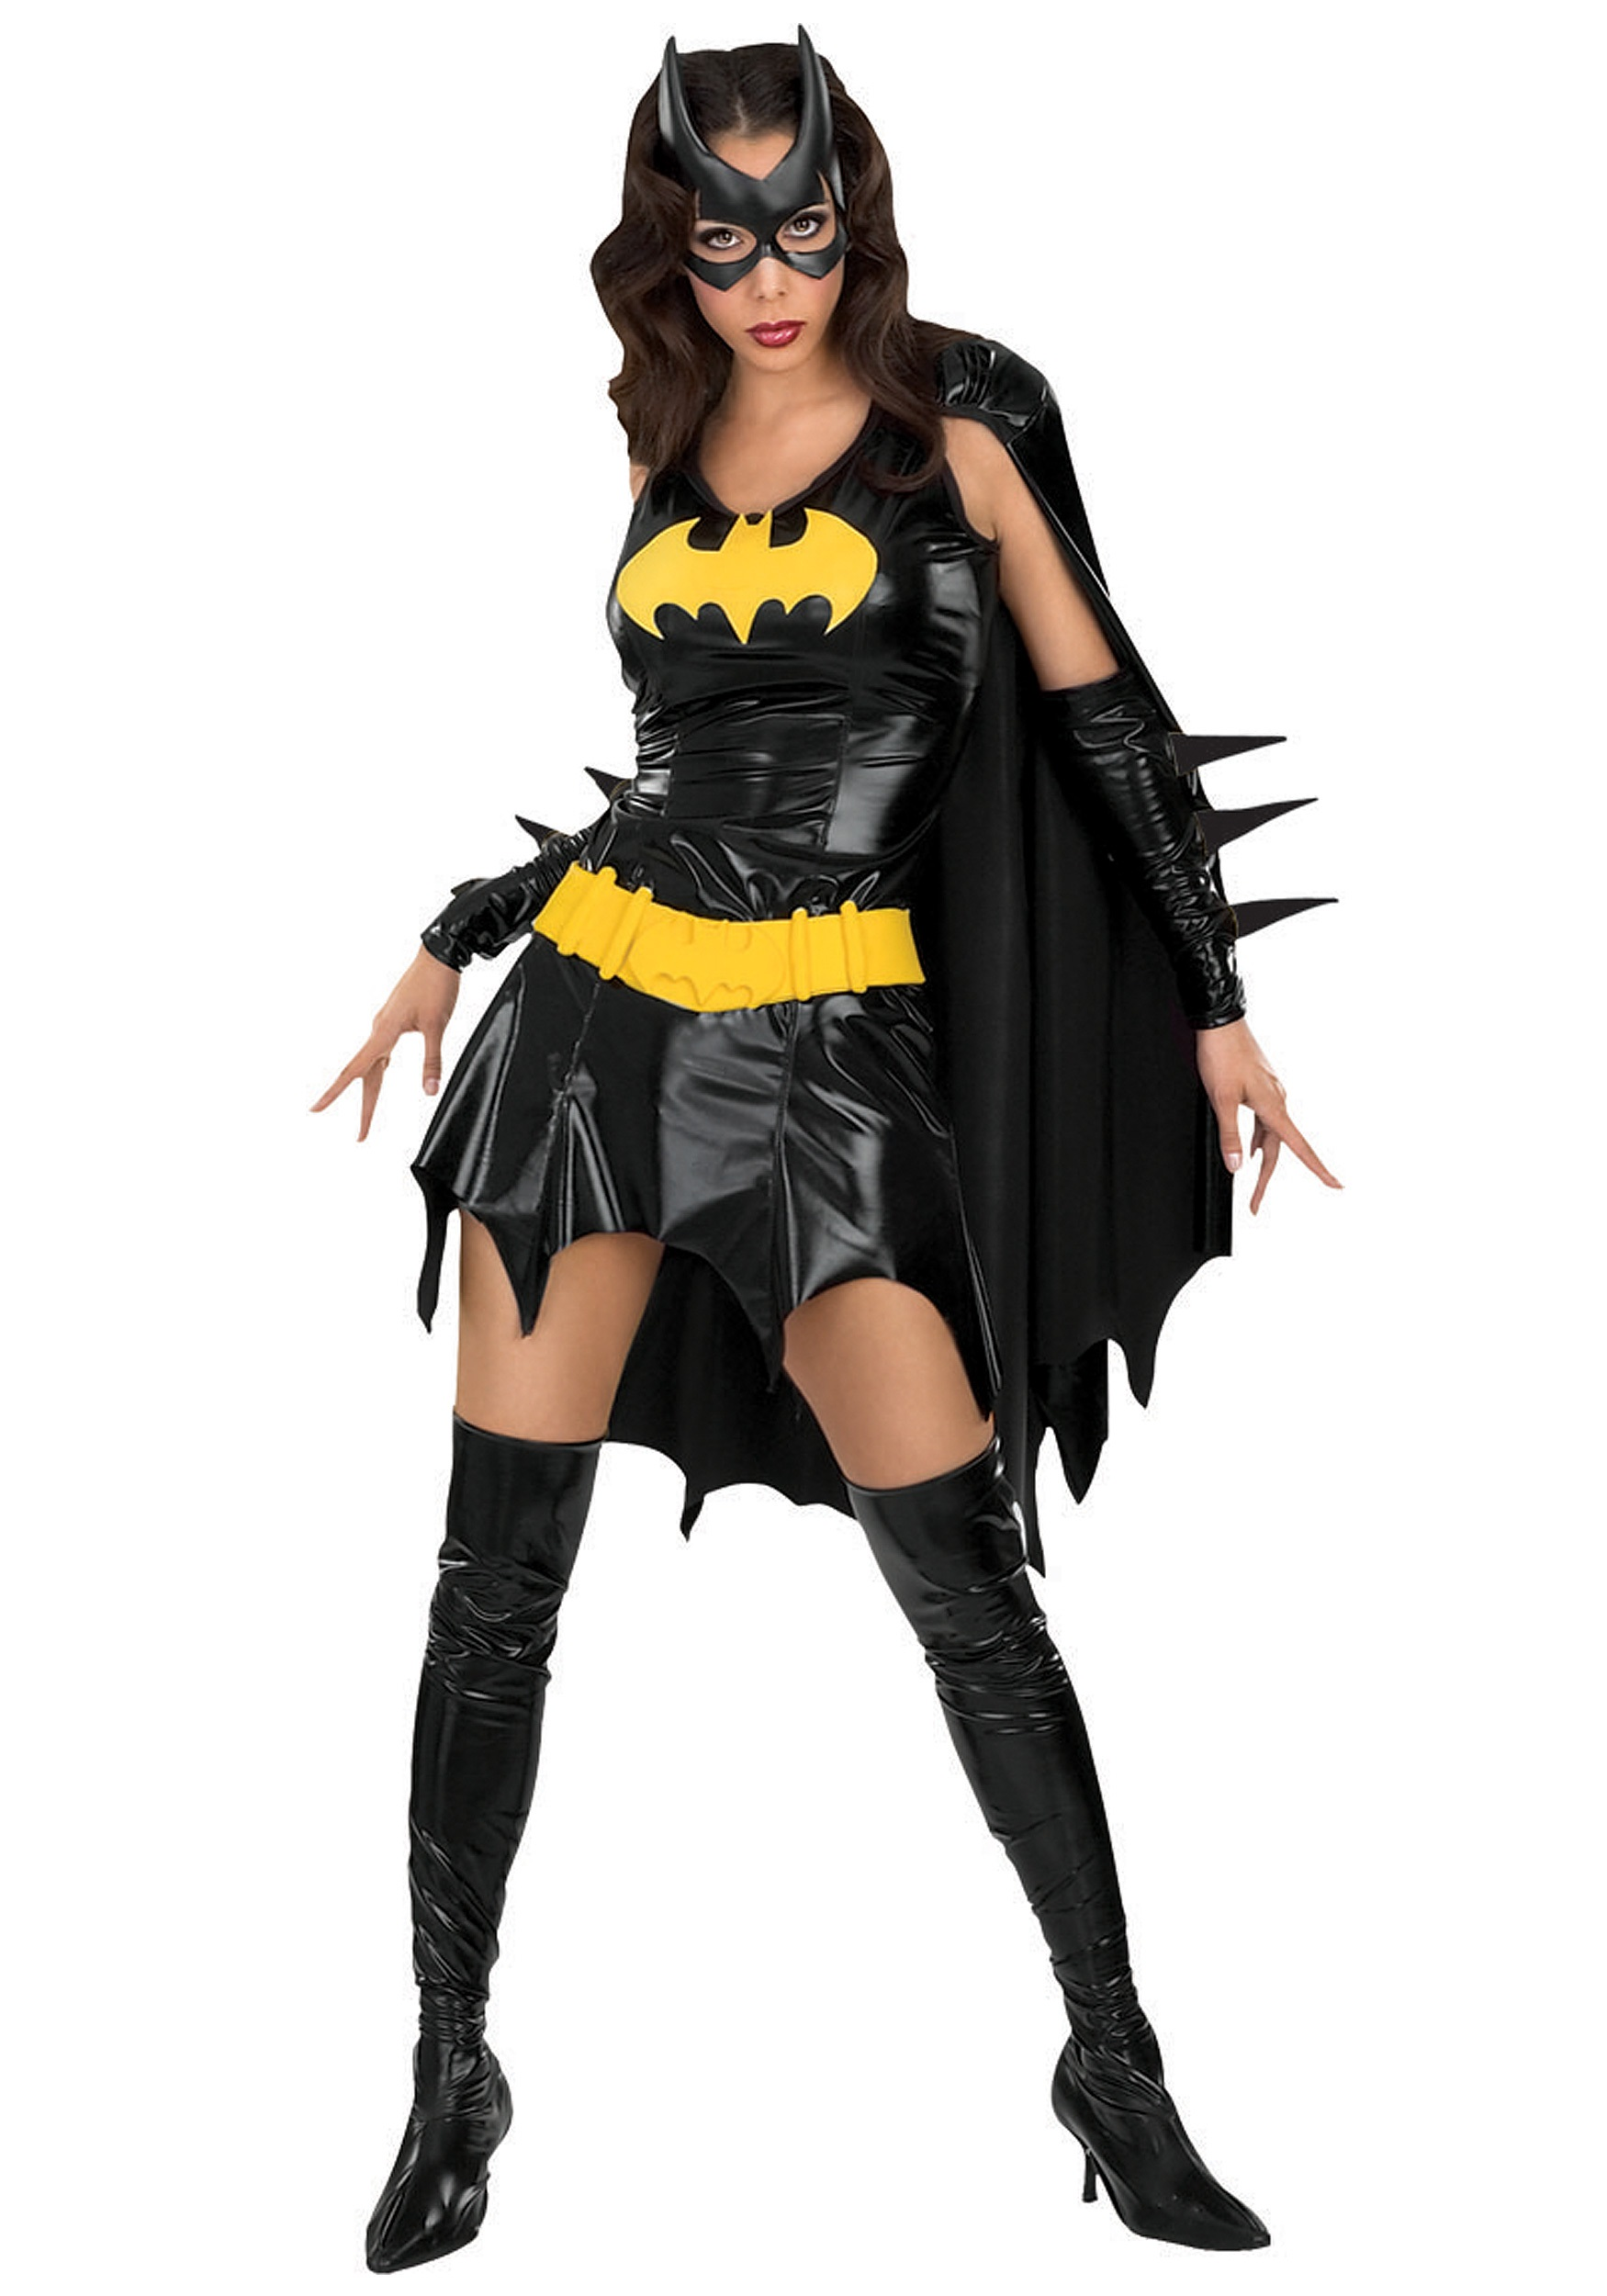 Image result for batman costume for women